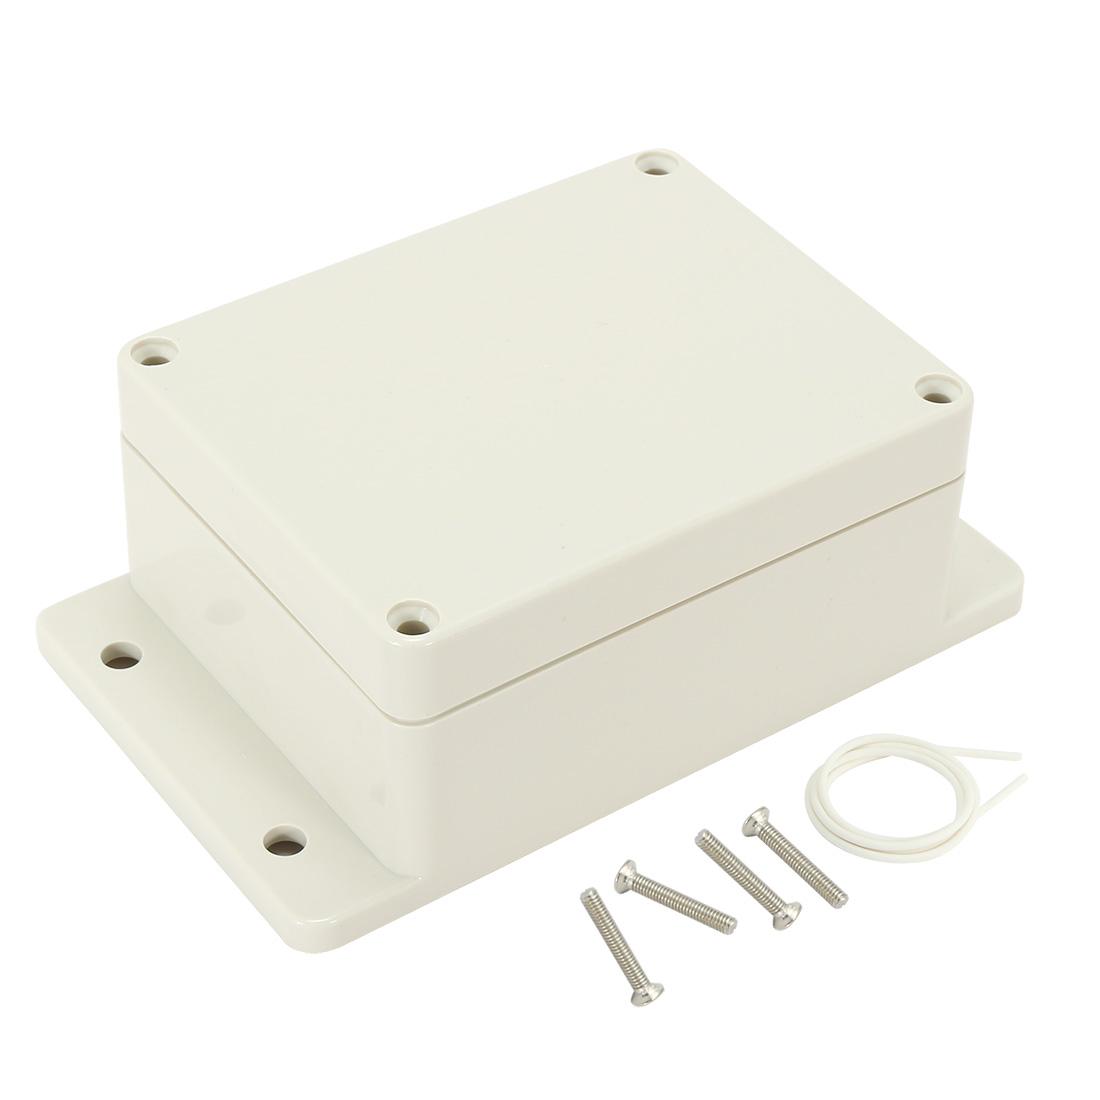 "4.53""x3.54""x2.2""(115mmx90mmx55mm) ABS Junction Box Universal Electric Project Enclosure w Fixed Ear"